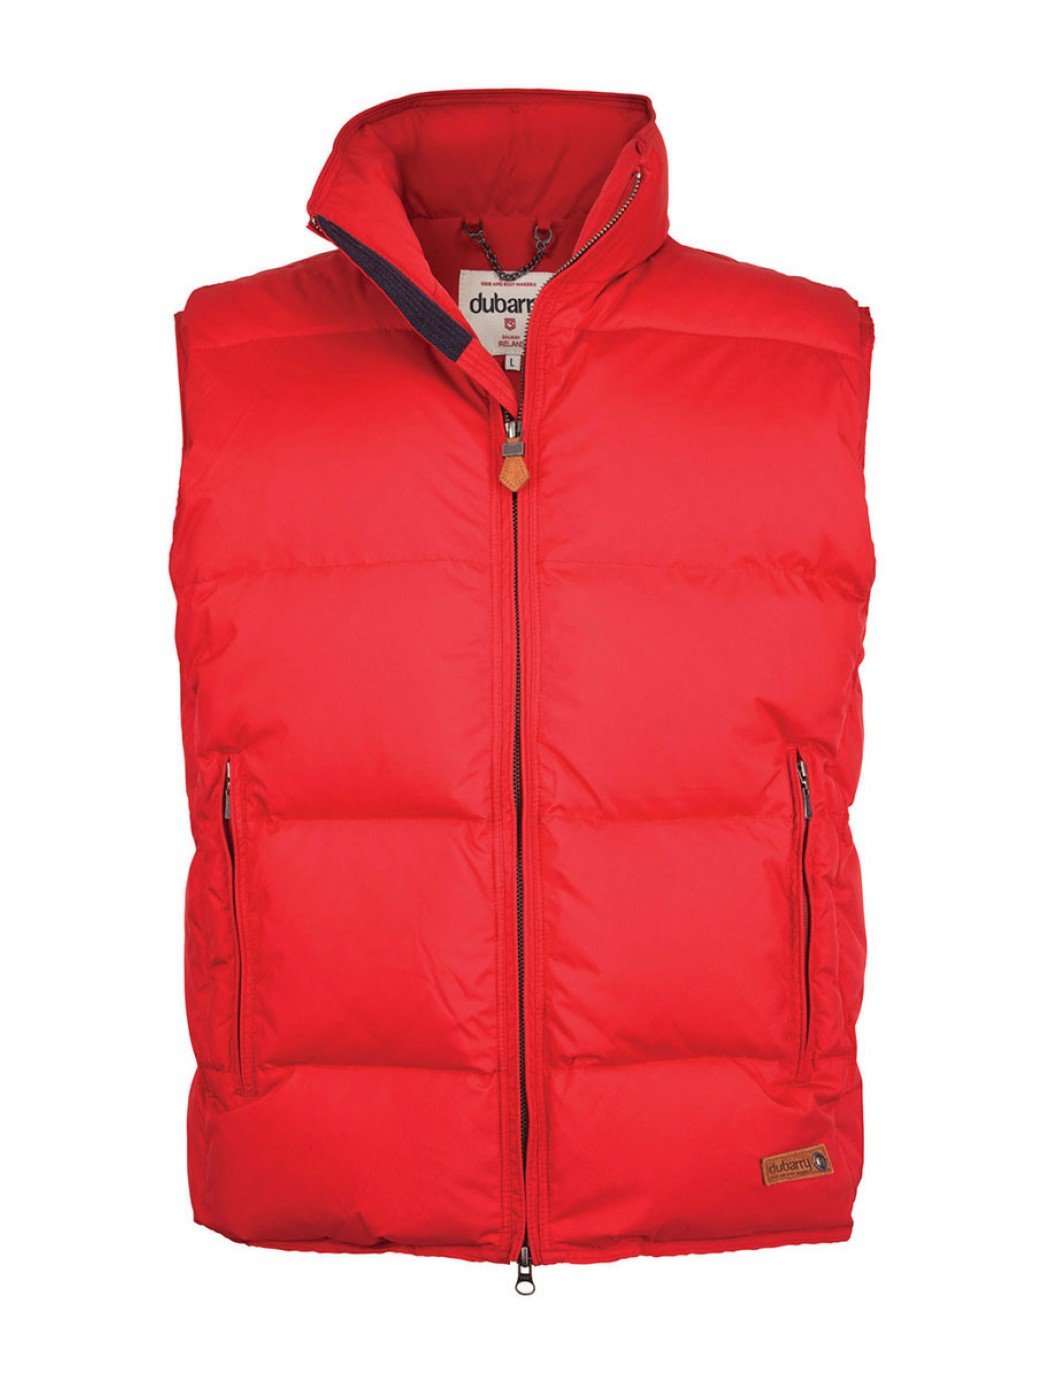 arklow-mens-jackets-red